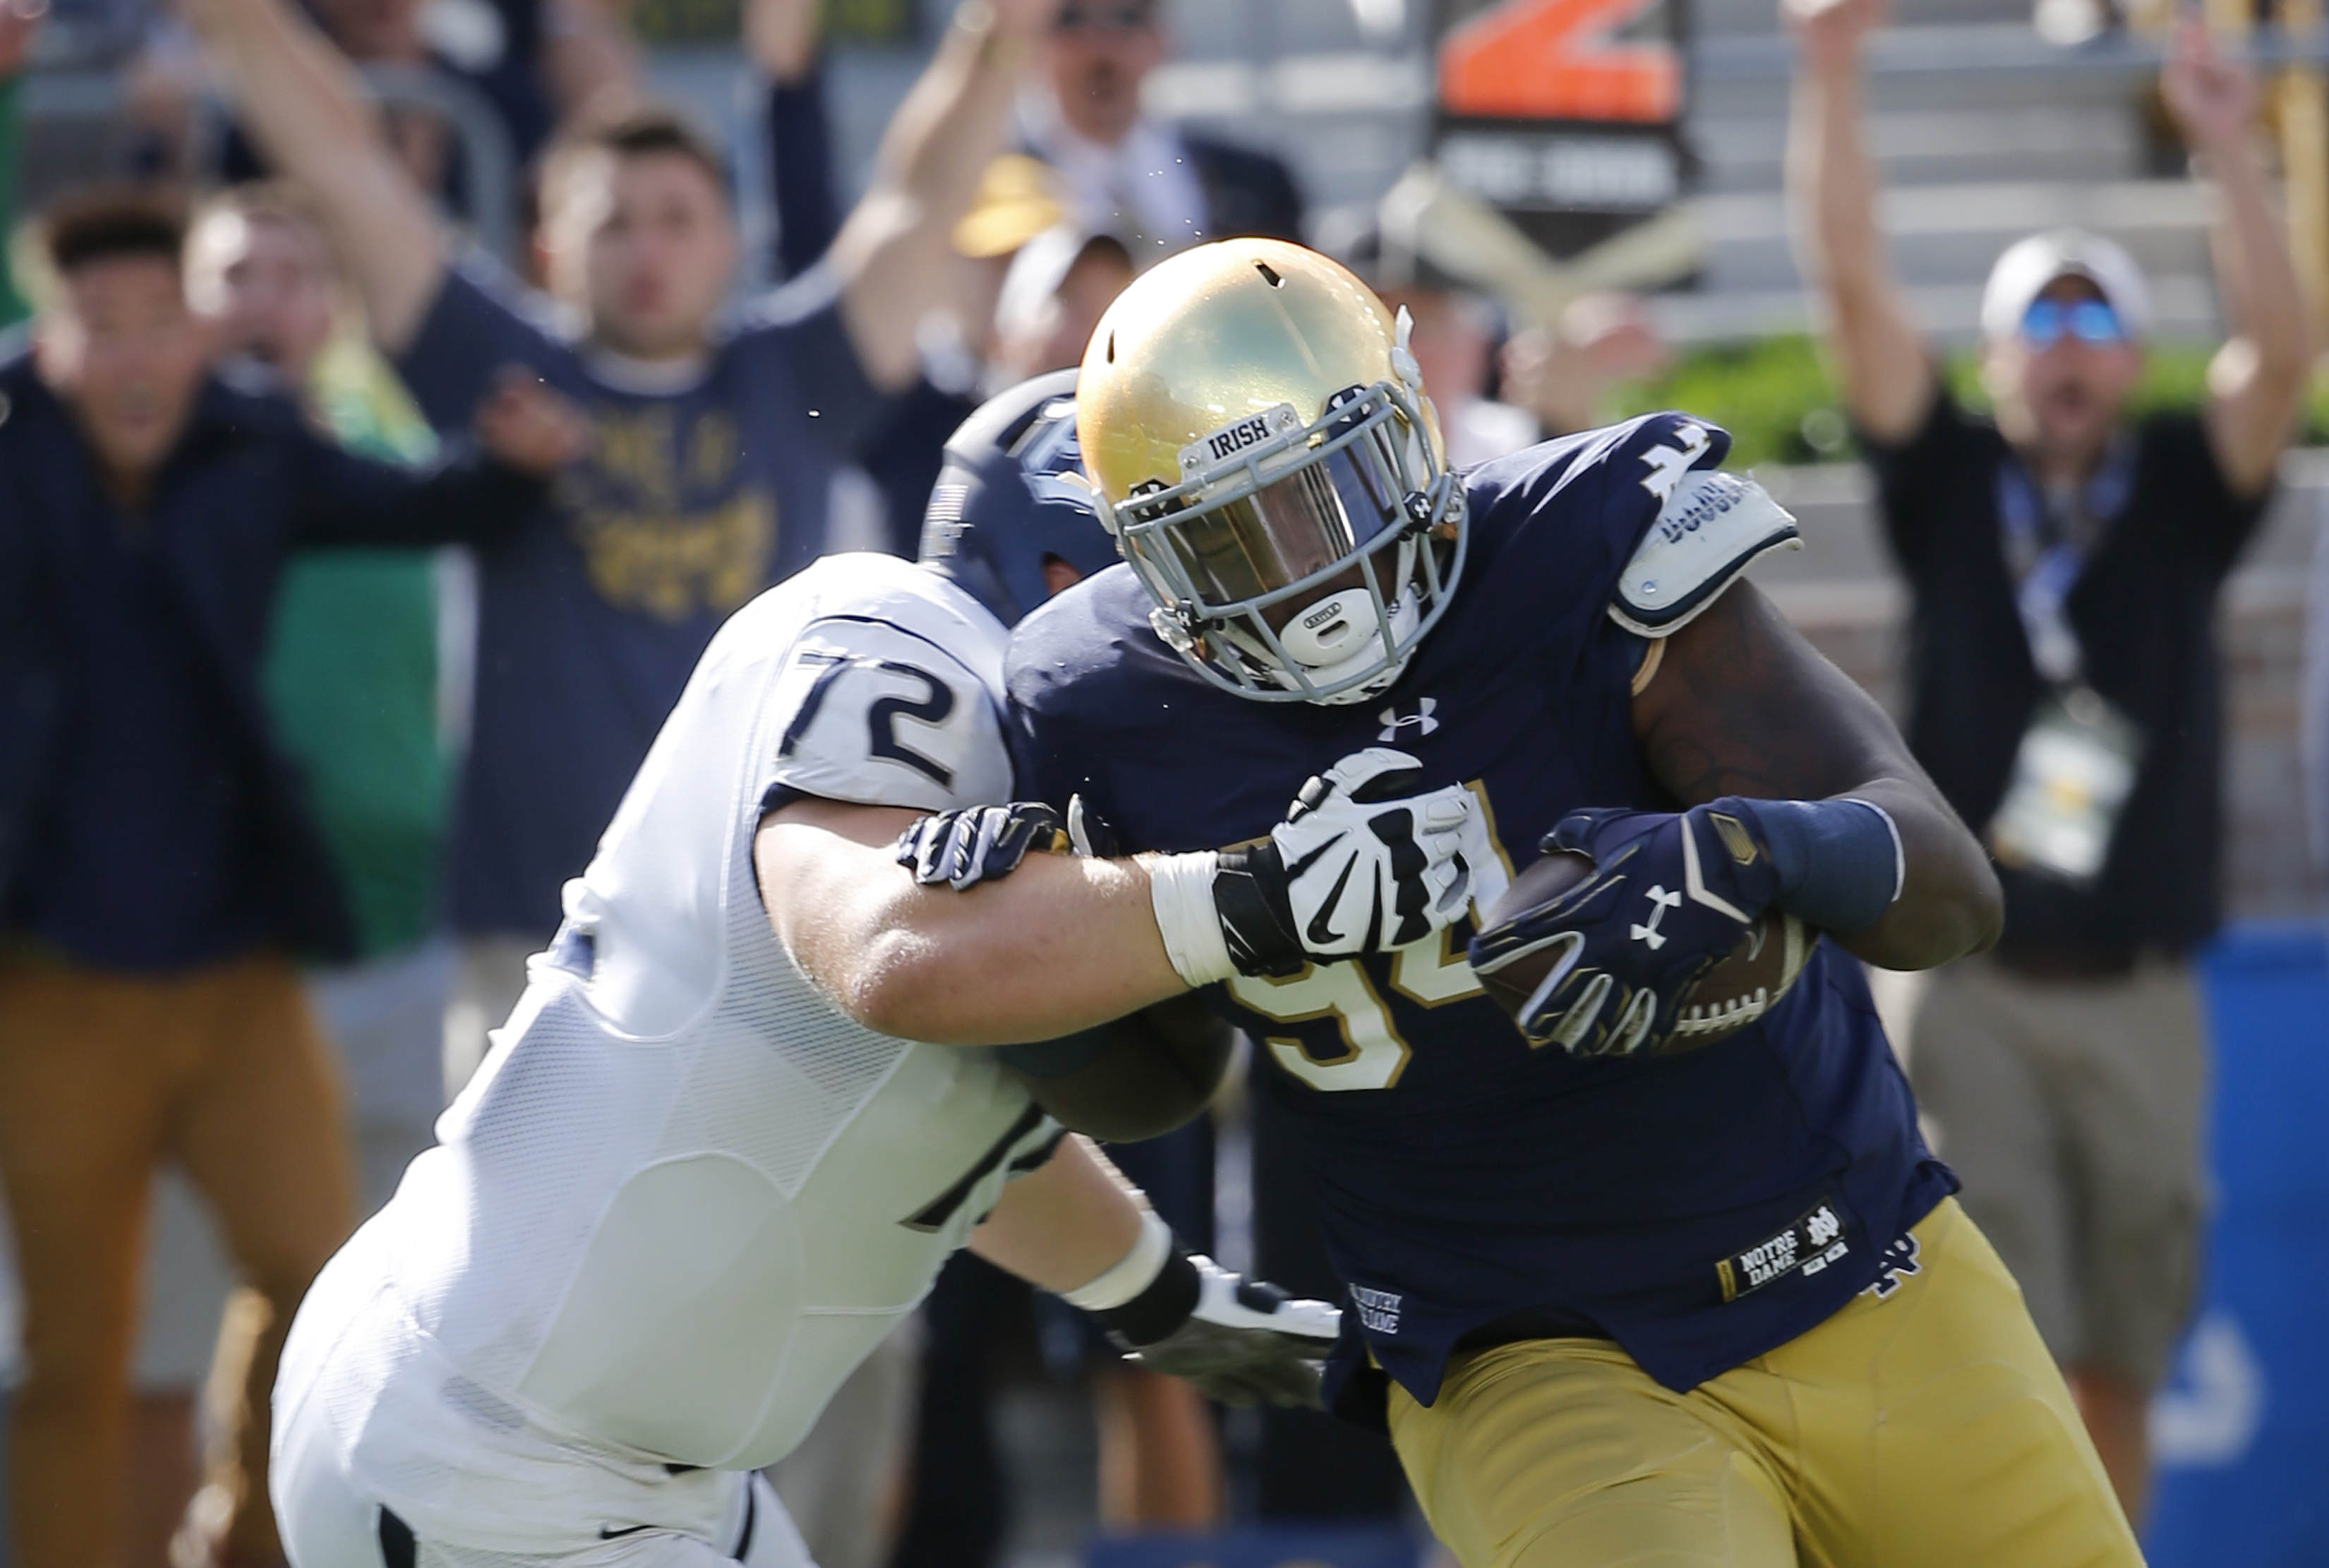 FILE - In this Sept. 10, 2016, file photo, Notre Dame defensive lineman Jarron Jones, right, returns on interception of a pass by Nevada quarterback Tyler Stewart as offensive lineman Jeremy Macauley defends during the first half of an NCAA college footba